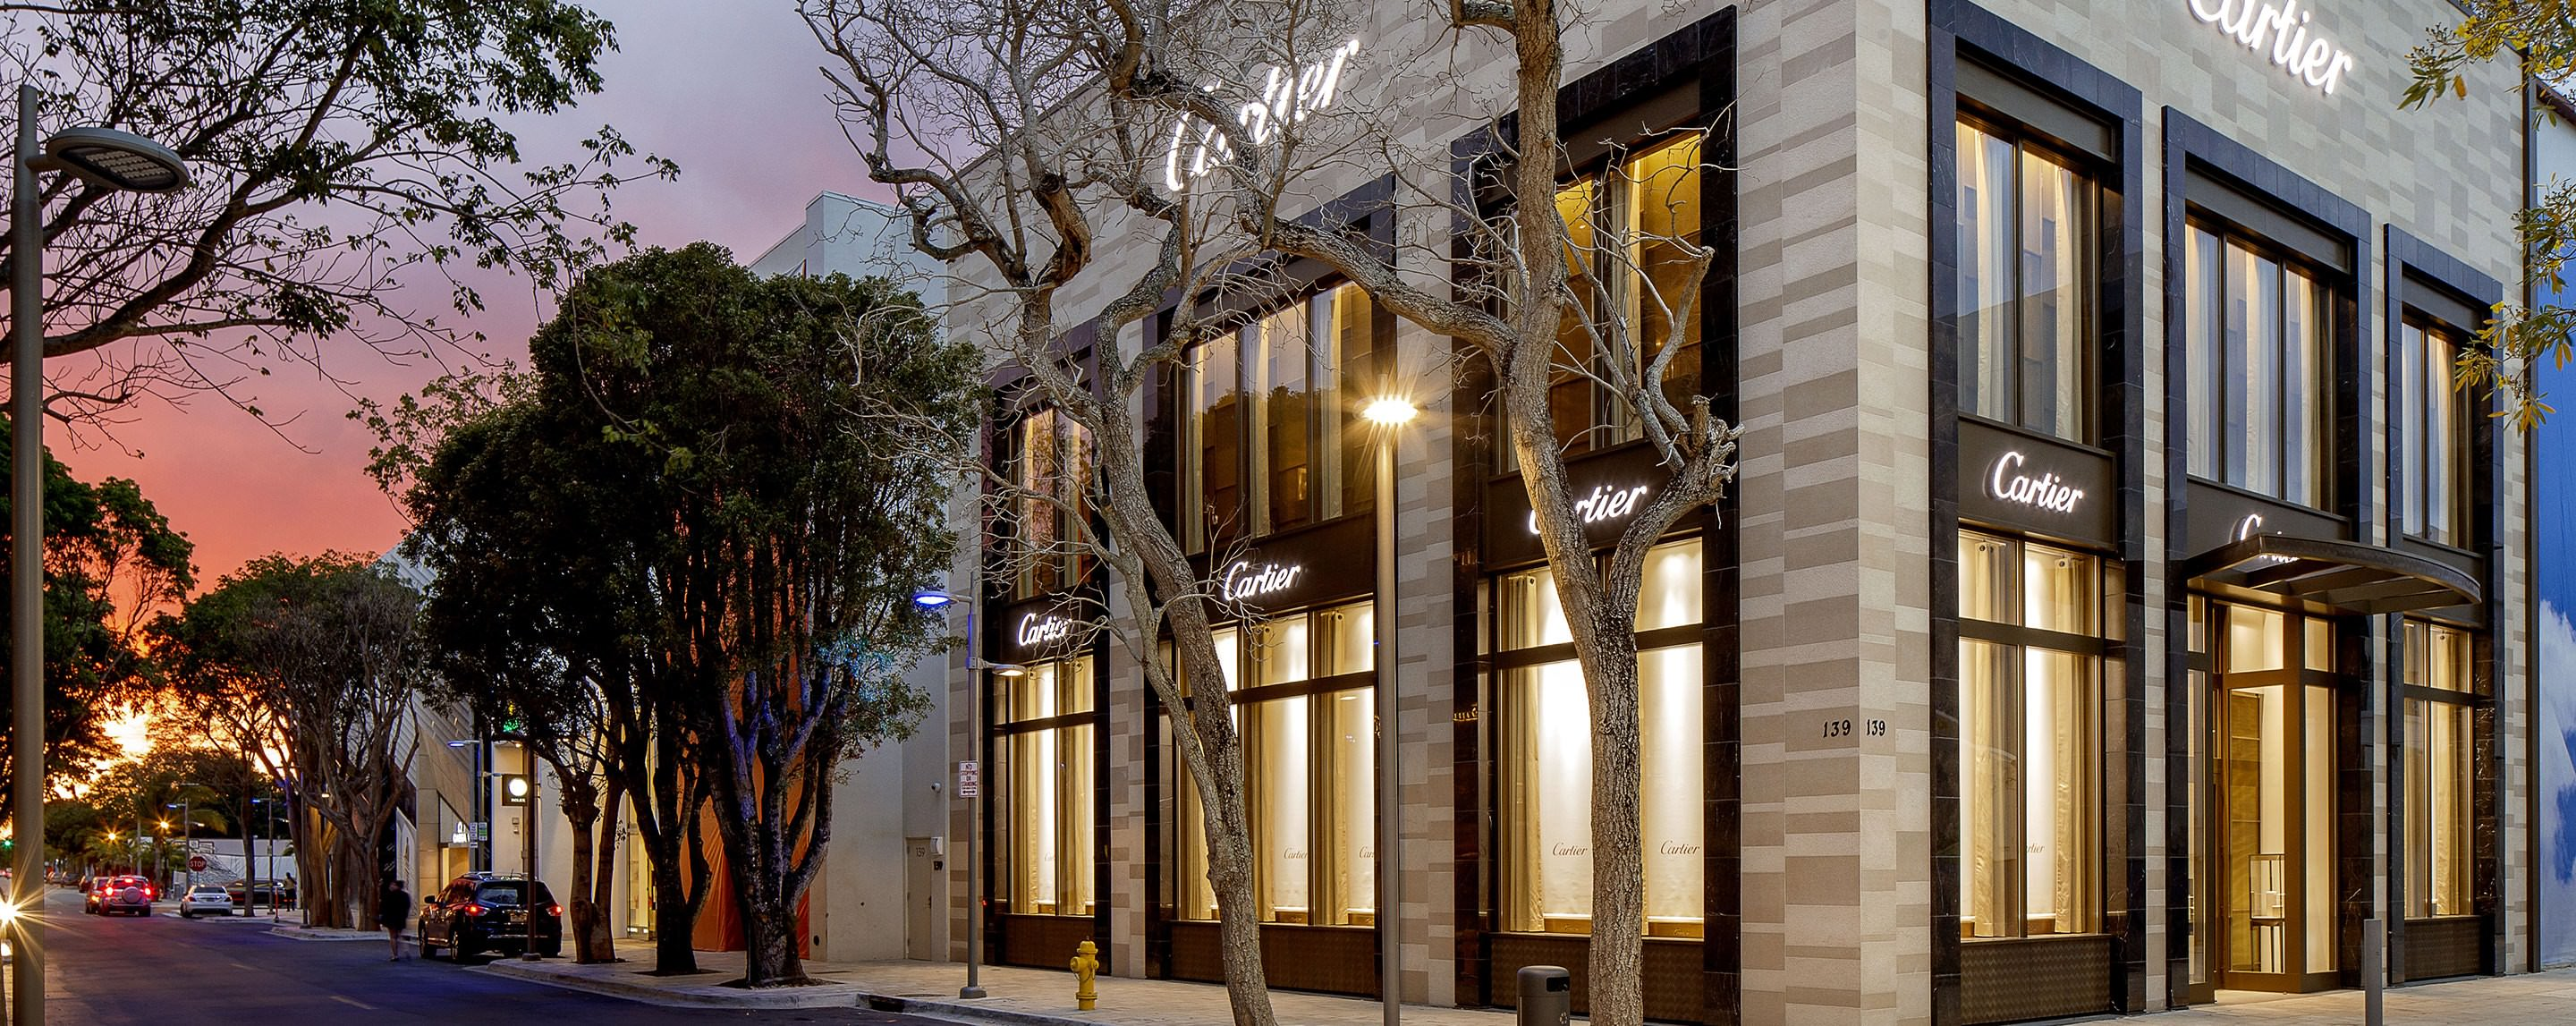 A shot of the outside of a Cartier location. The building is brightly lit and the sun is setting.